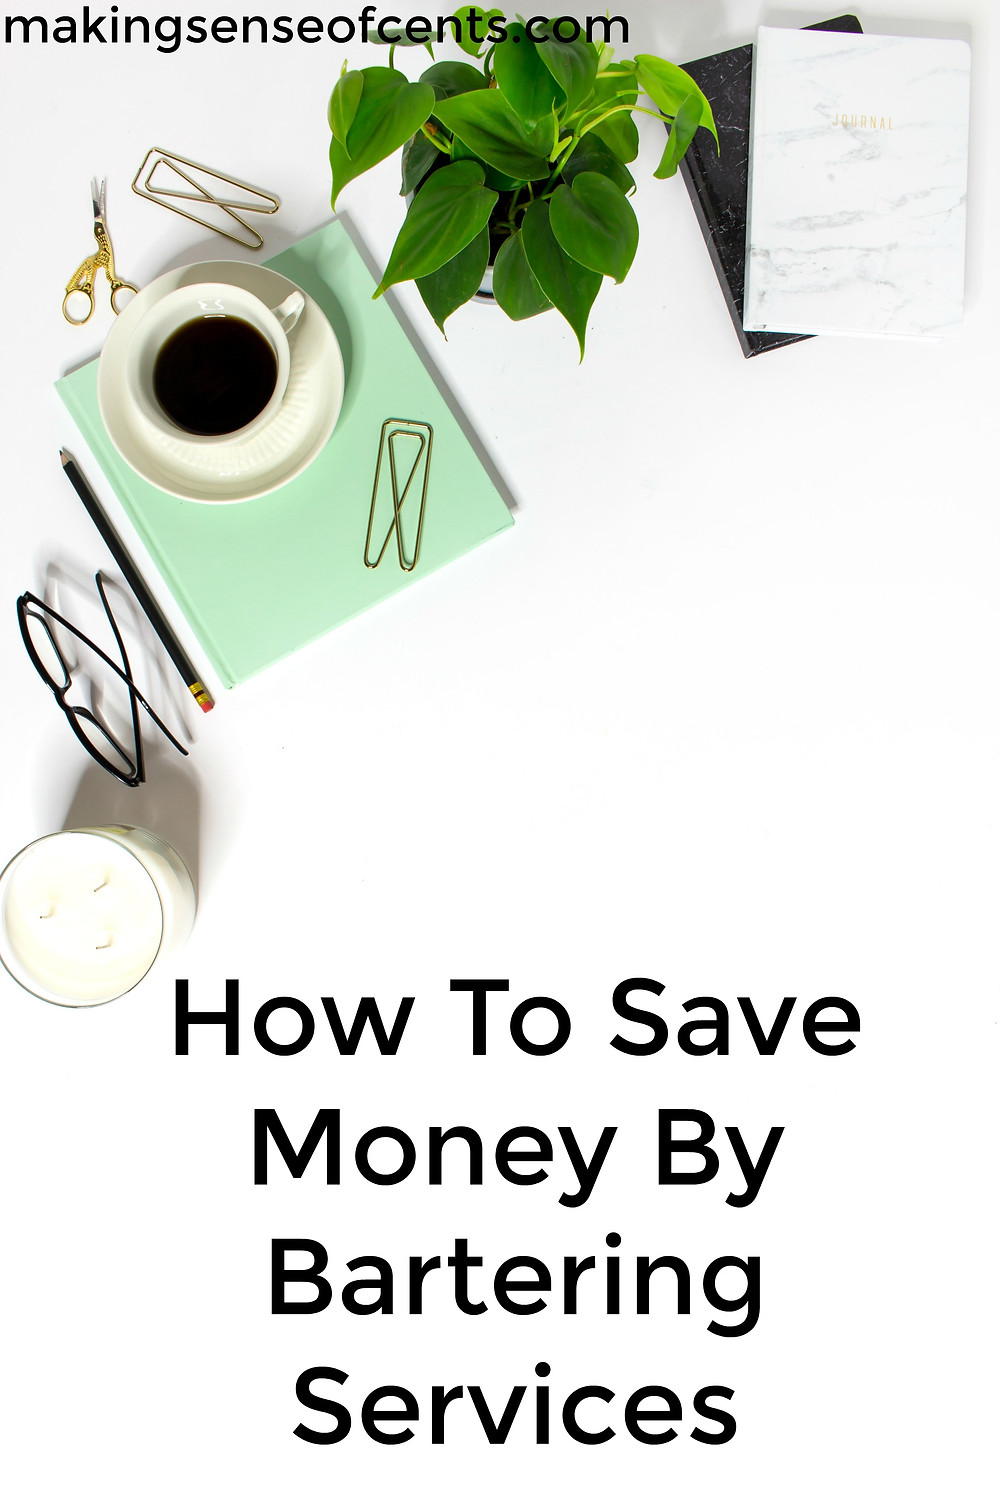 Find out how to save money by bartering services. This is a great list!